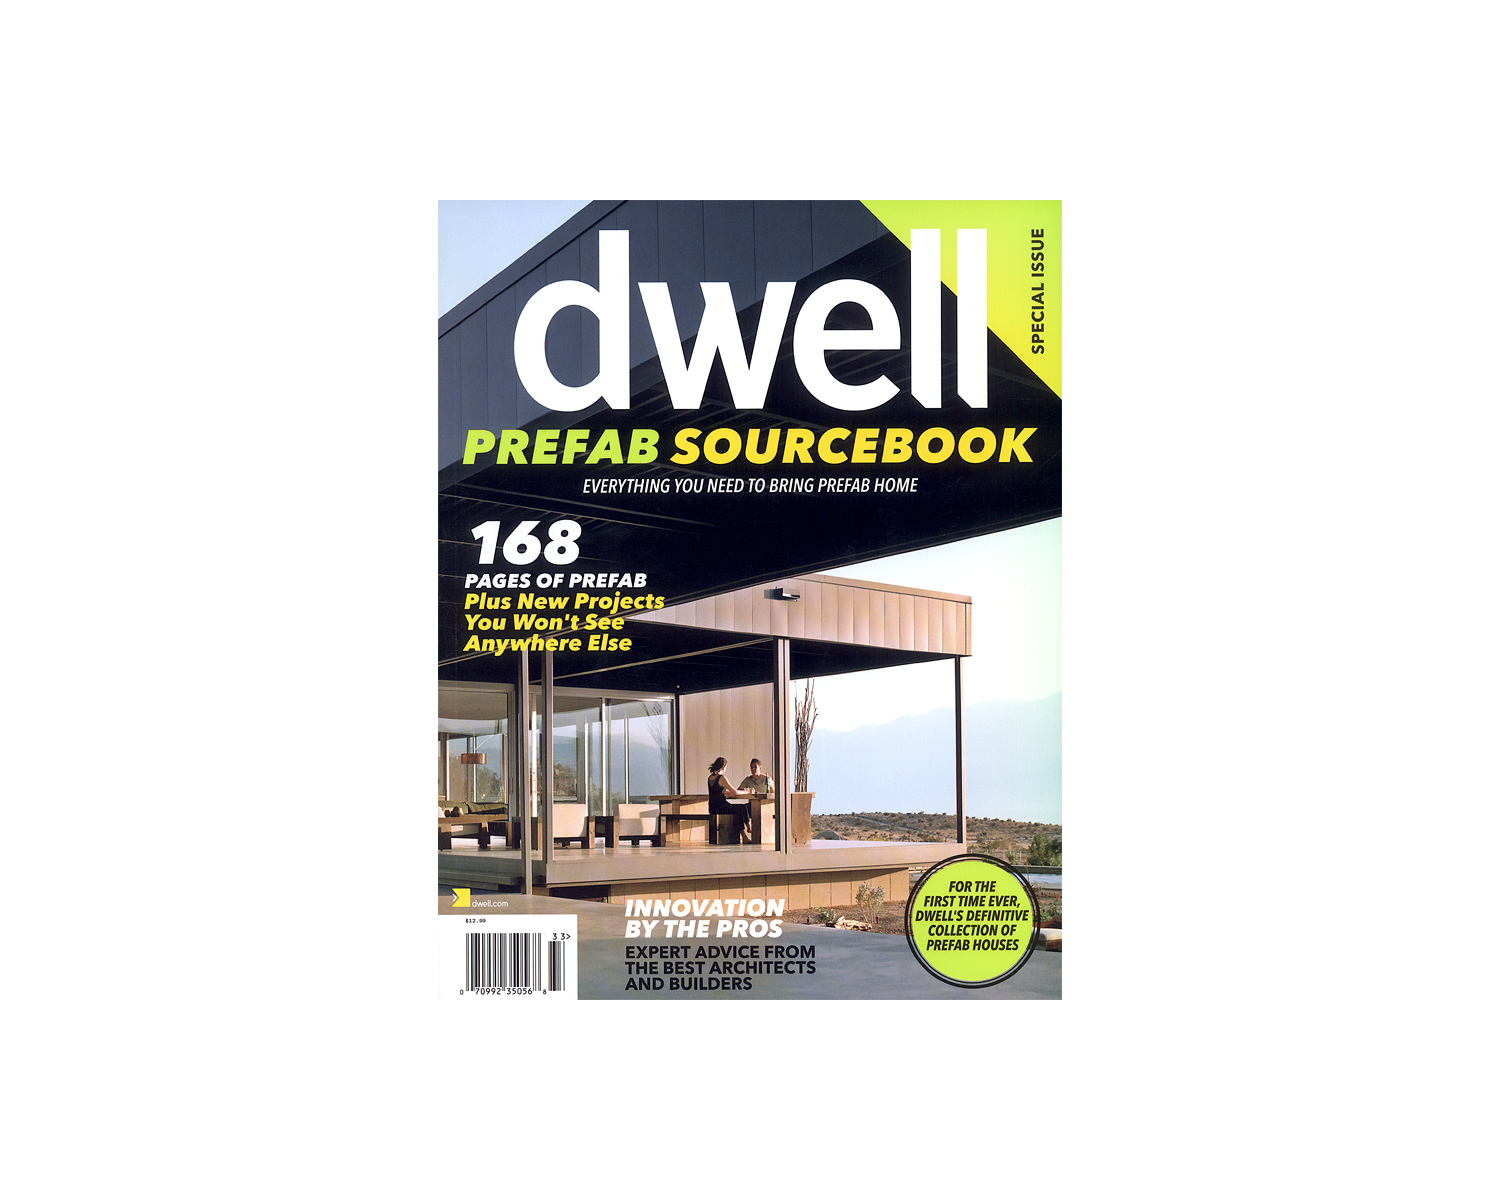 dwell_prefab_coverps1200